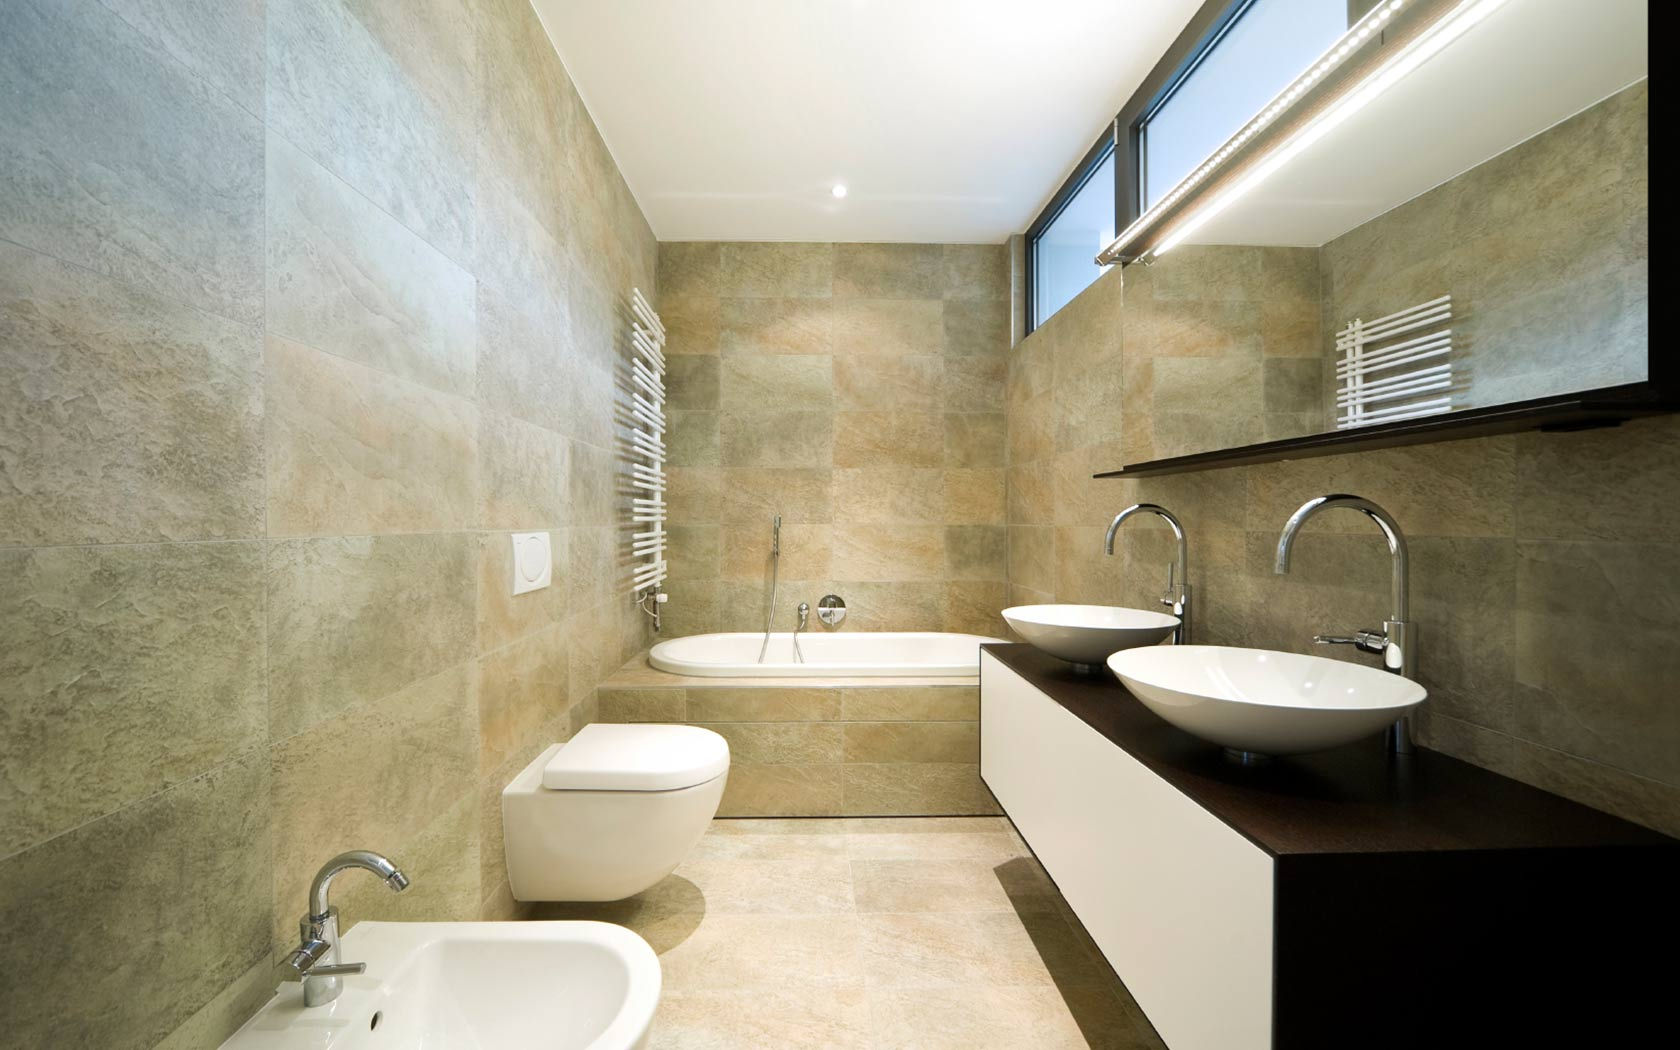 Bathroom installation bronx ny bathtub reglazers Bathroom design and installation chester